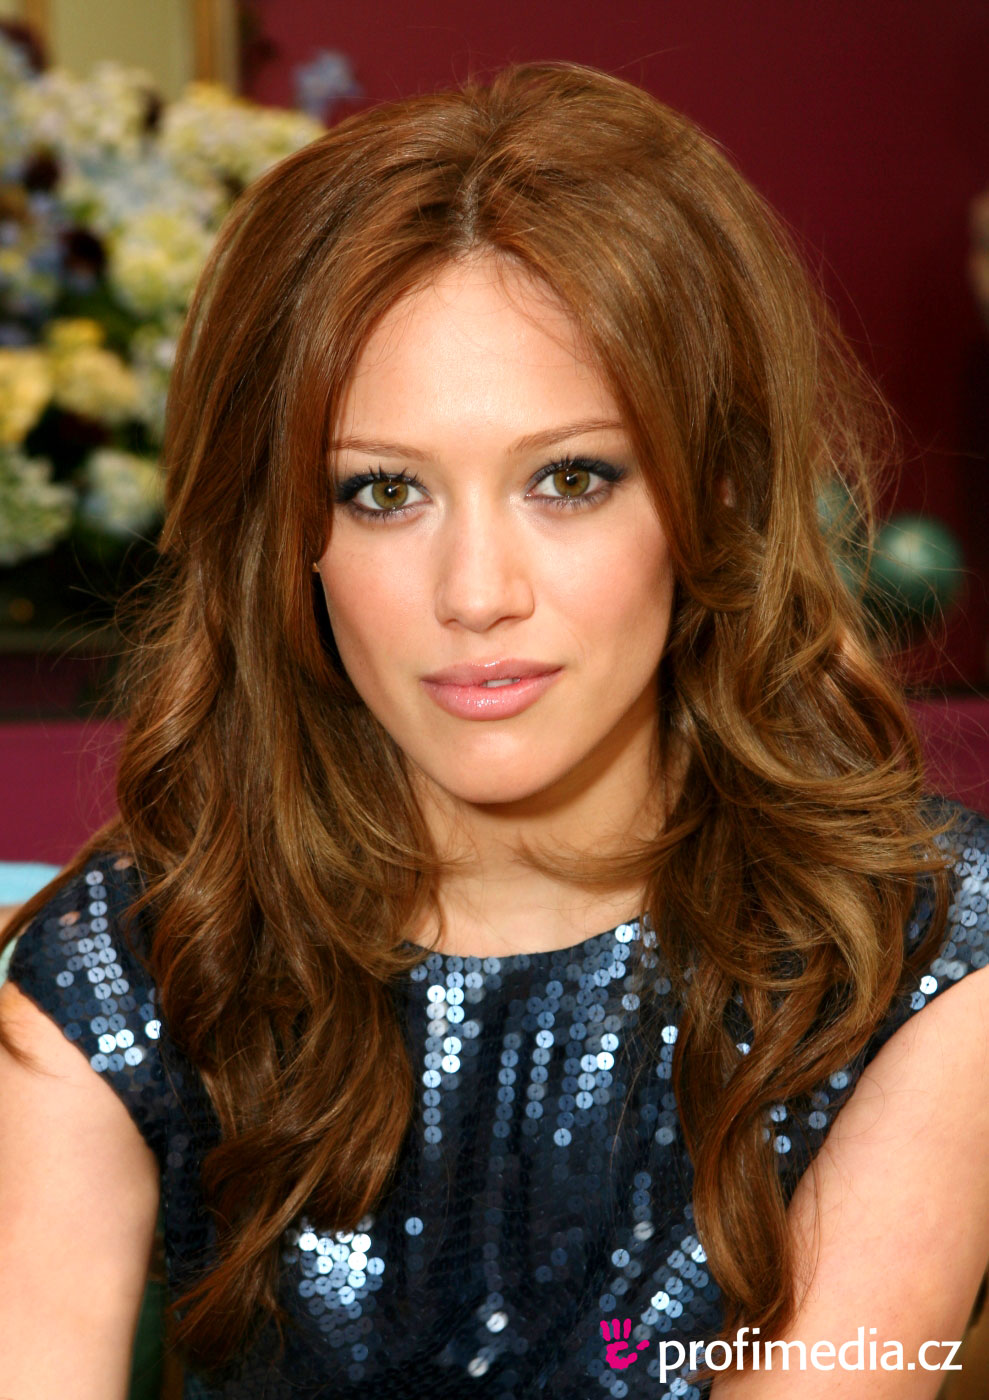 Hilary Duff - - hairstyle - easyHairStyler